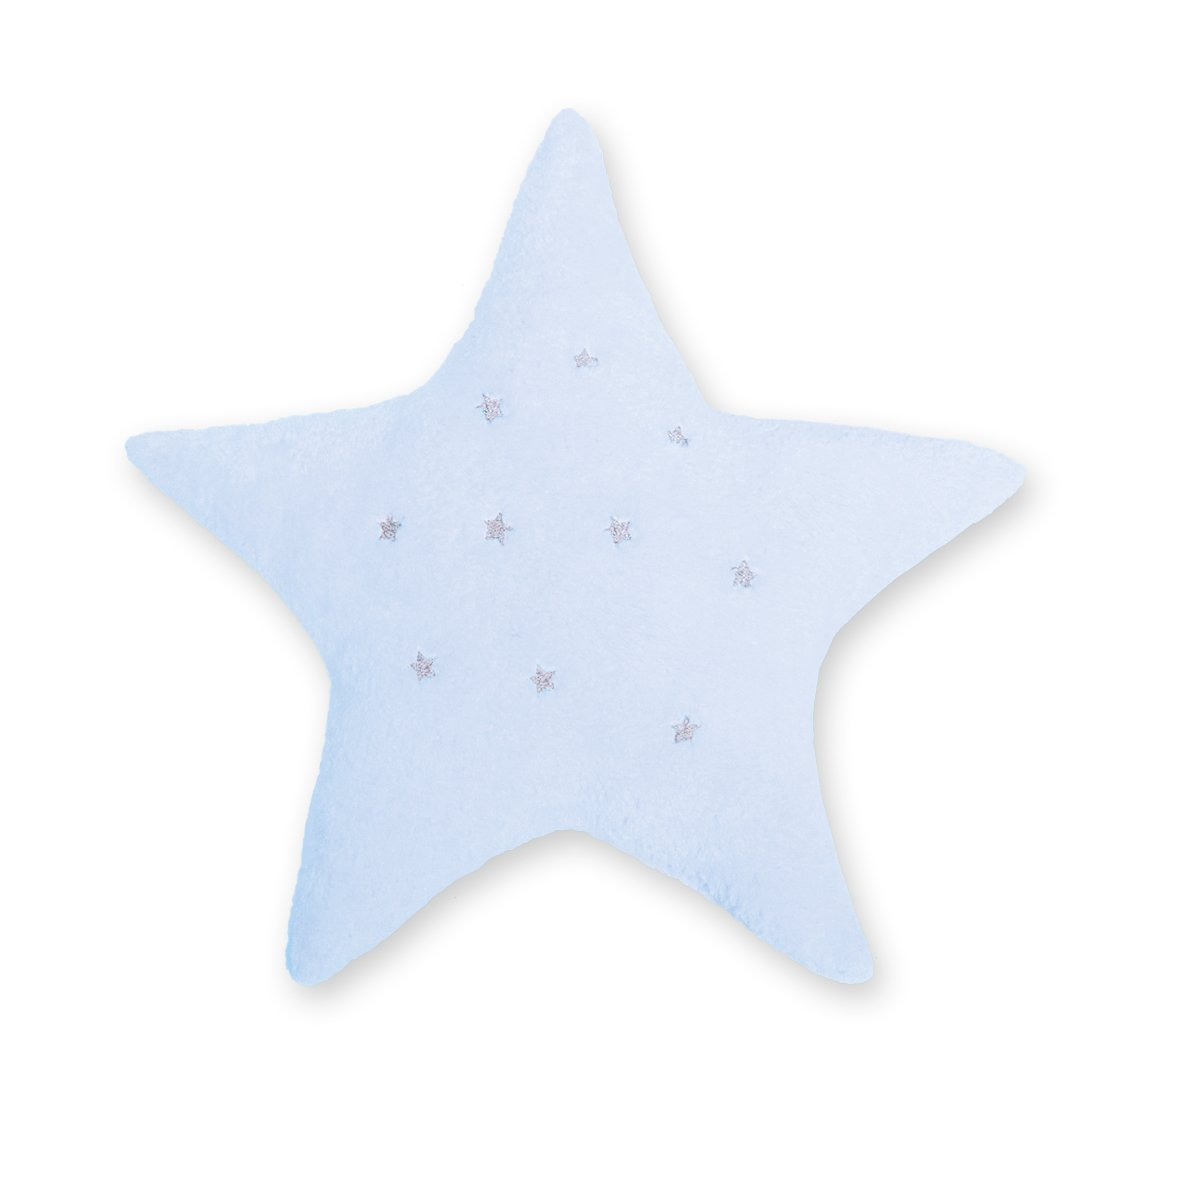 Bemini Cushion, Star Softy Stary Ecru 20 BABY BOUM UK 554STASS20SF